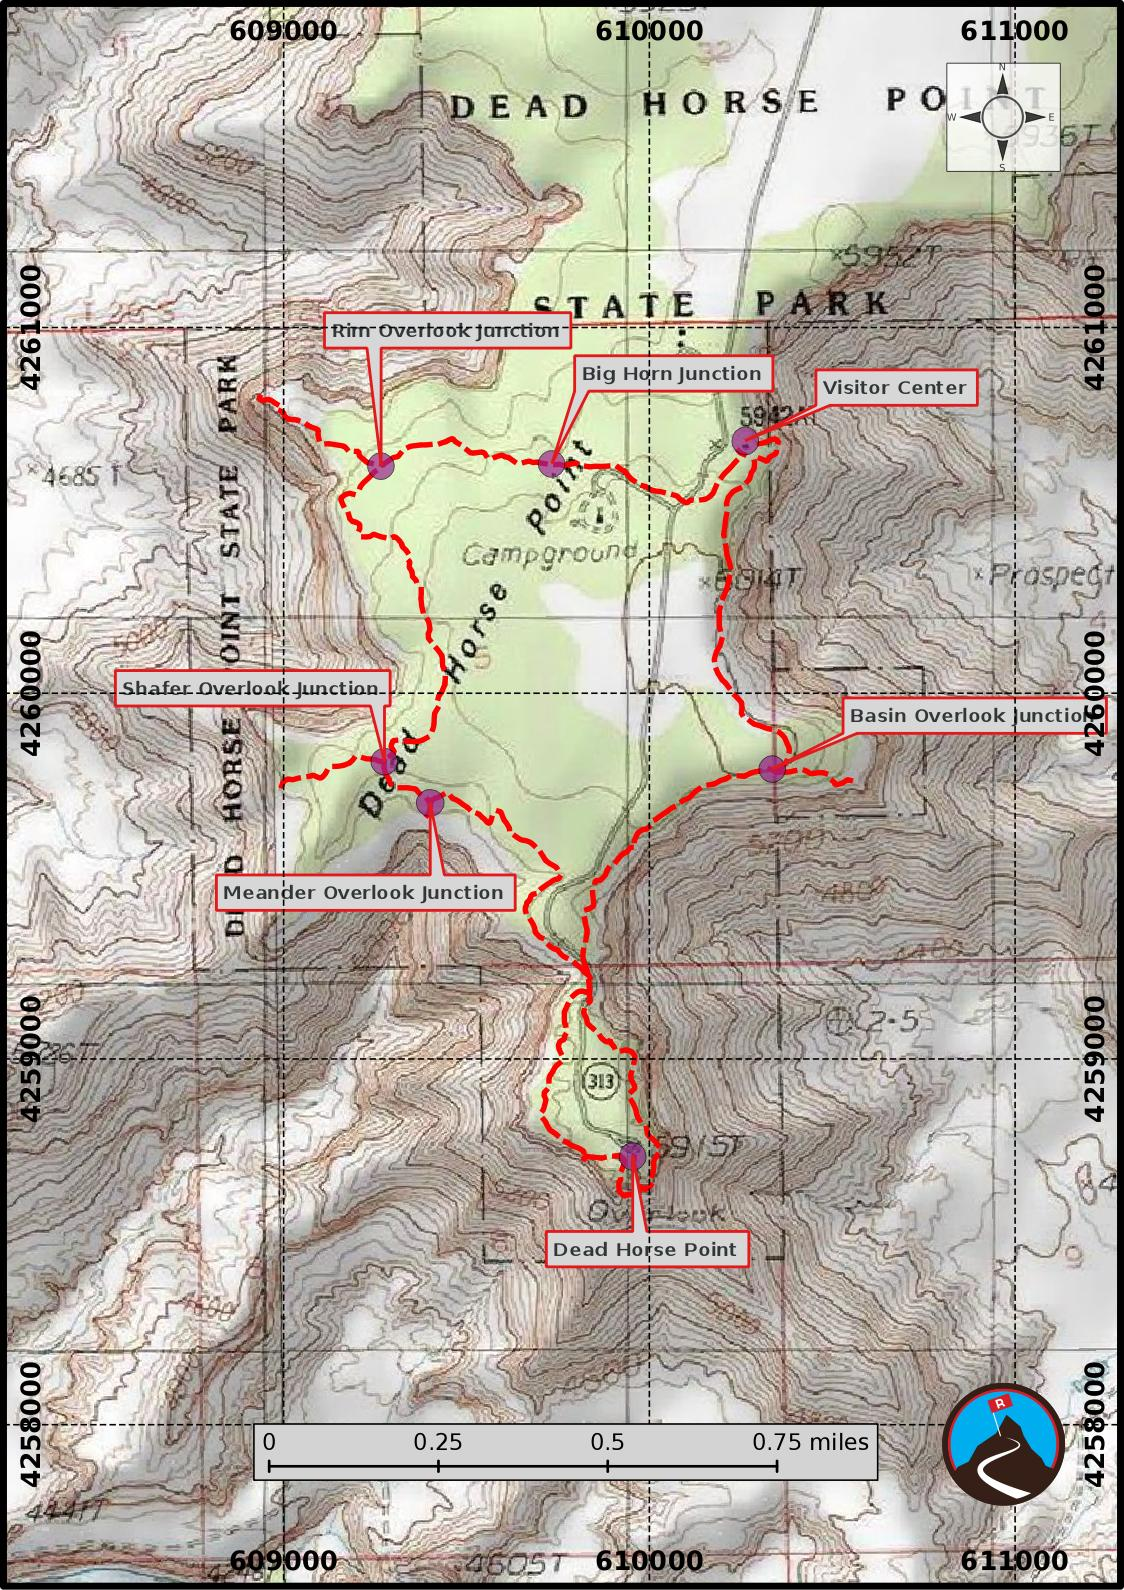 Hiking Dead Horse State Park - Moab - Road Trip Ryan on pillars of eternity map, destiny map, the forest map, thief map, fallen earth map, canyonlands national park map, moab utah map, dark souls map, total eclipse map, project zomboid map,